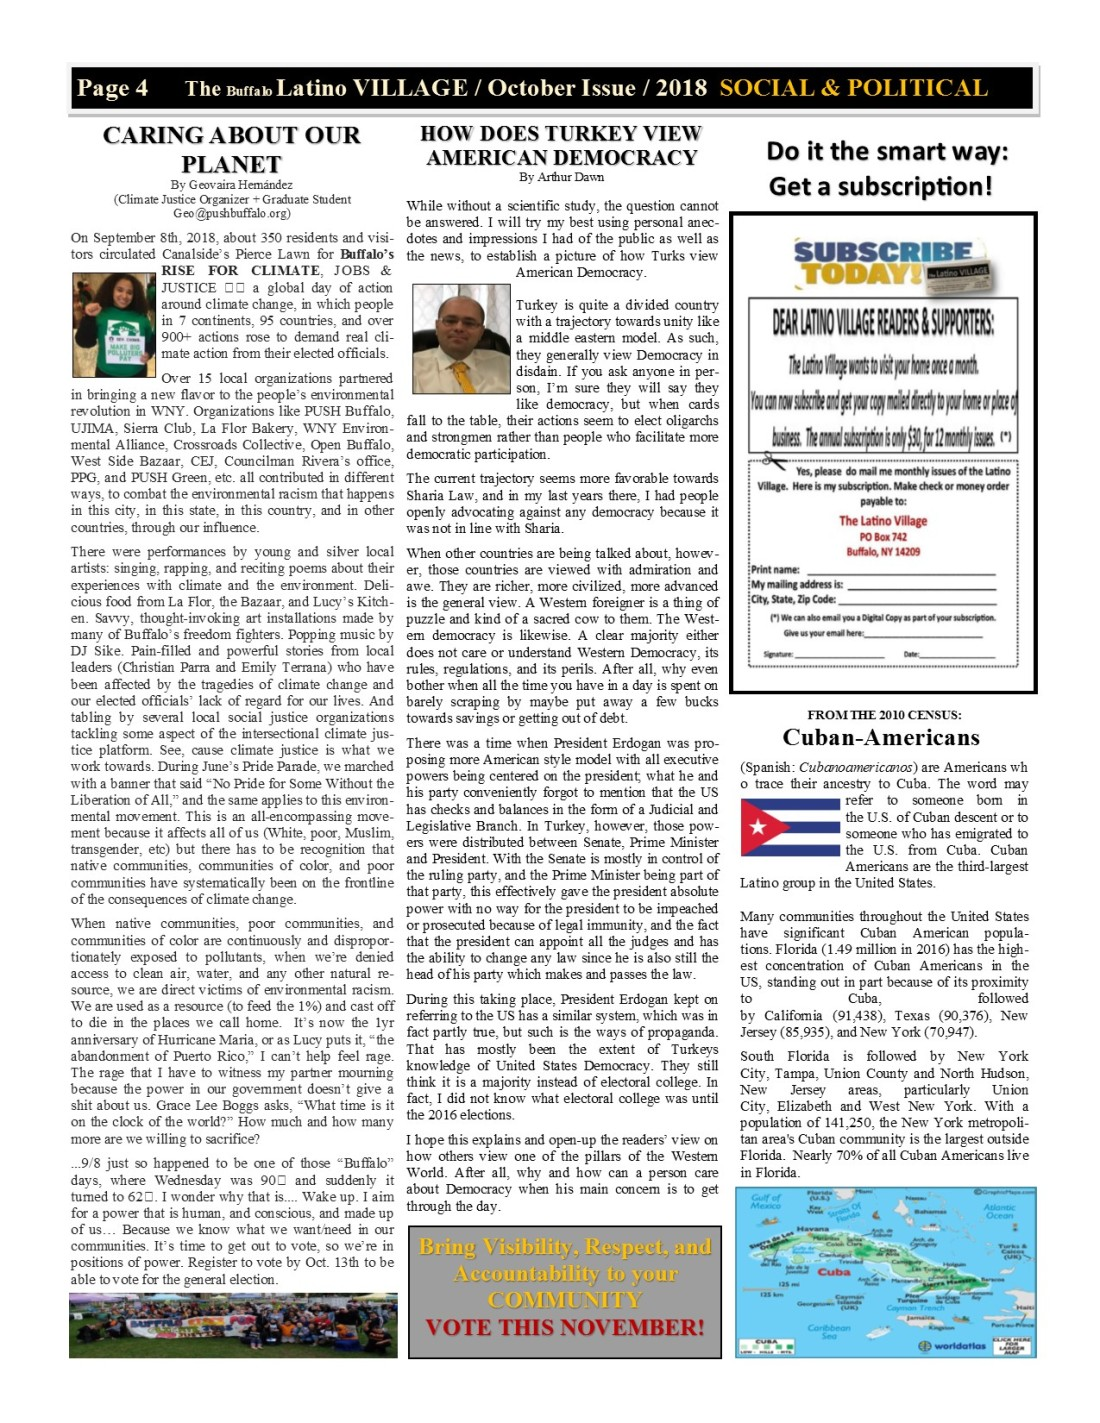 Page 4 Latino Village Newslette October Issue 2018 No. 12